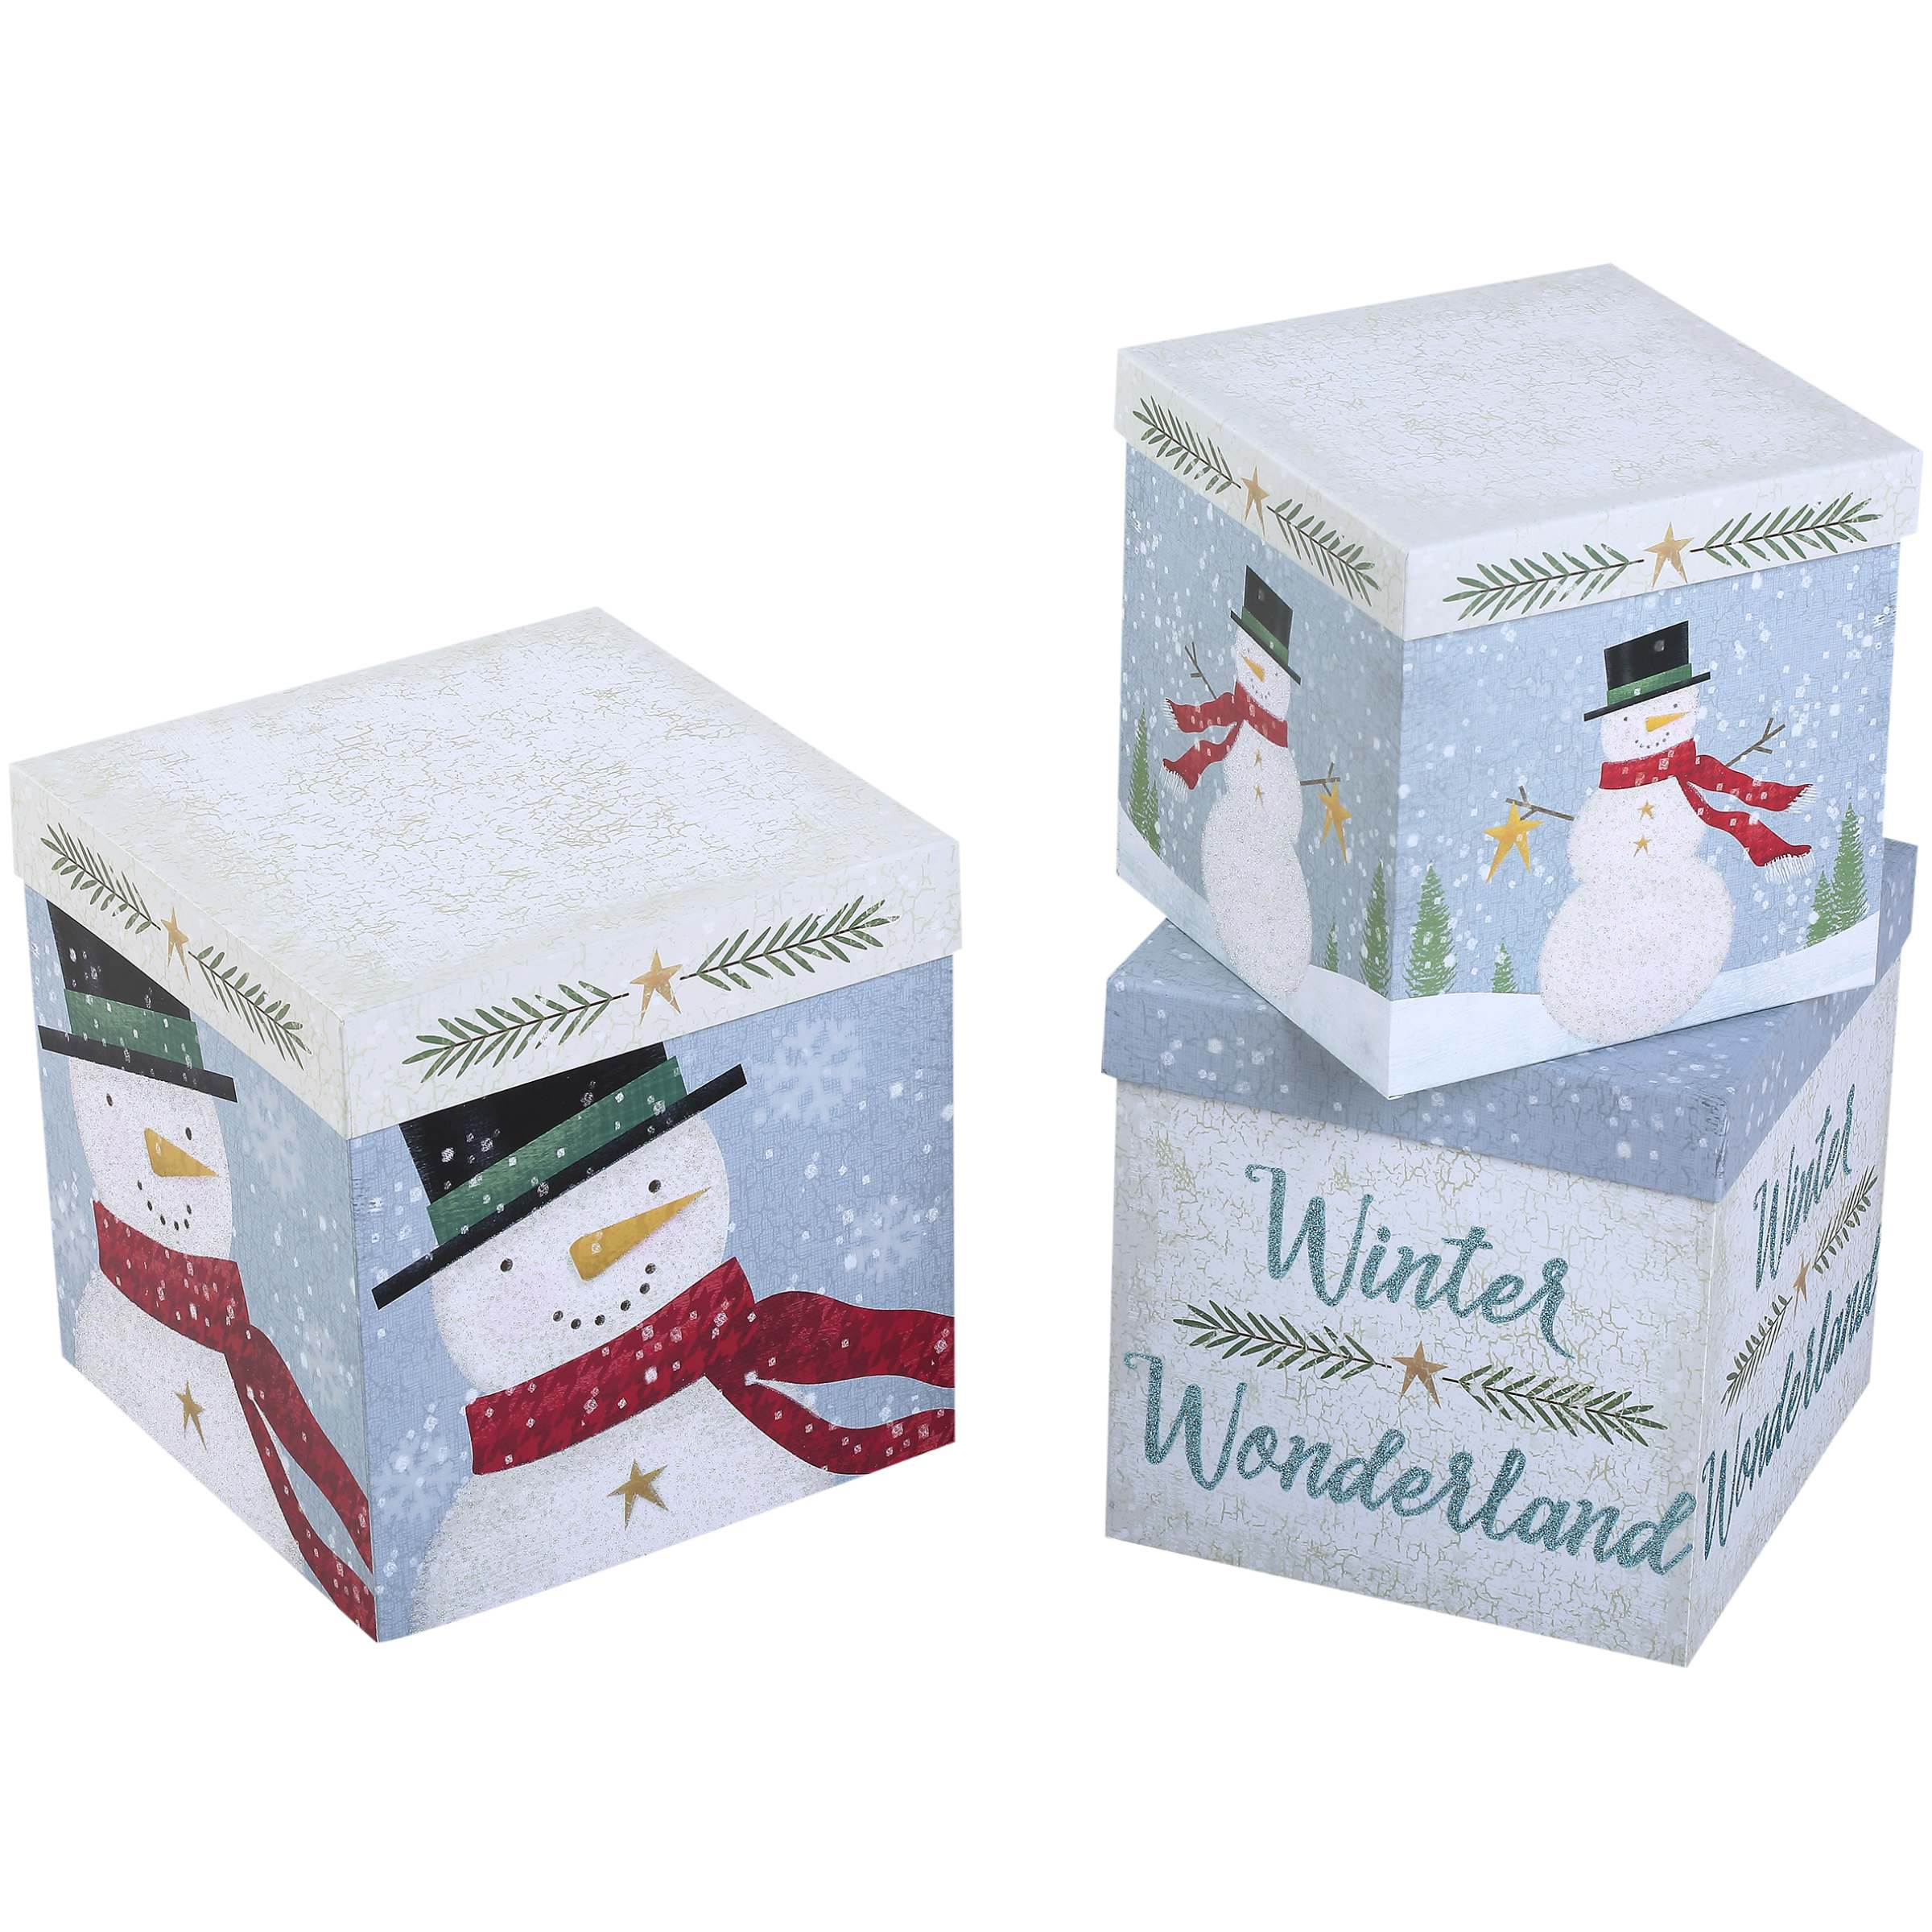 Holiday Time Decorative Gift Box Set, Snowman Theme, 3 Count